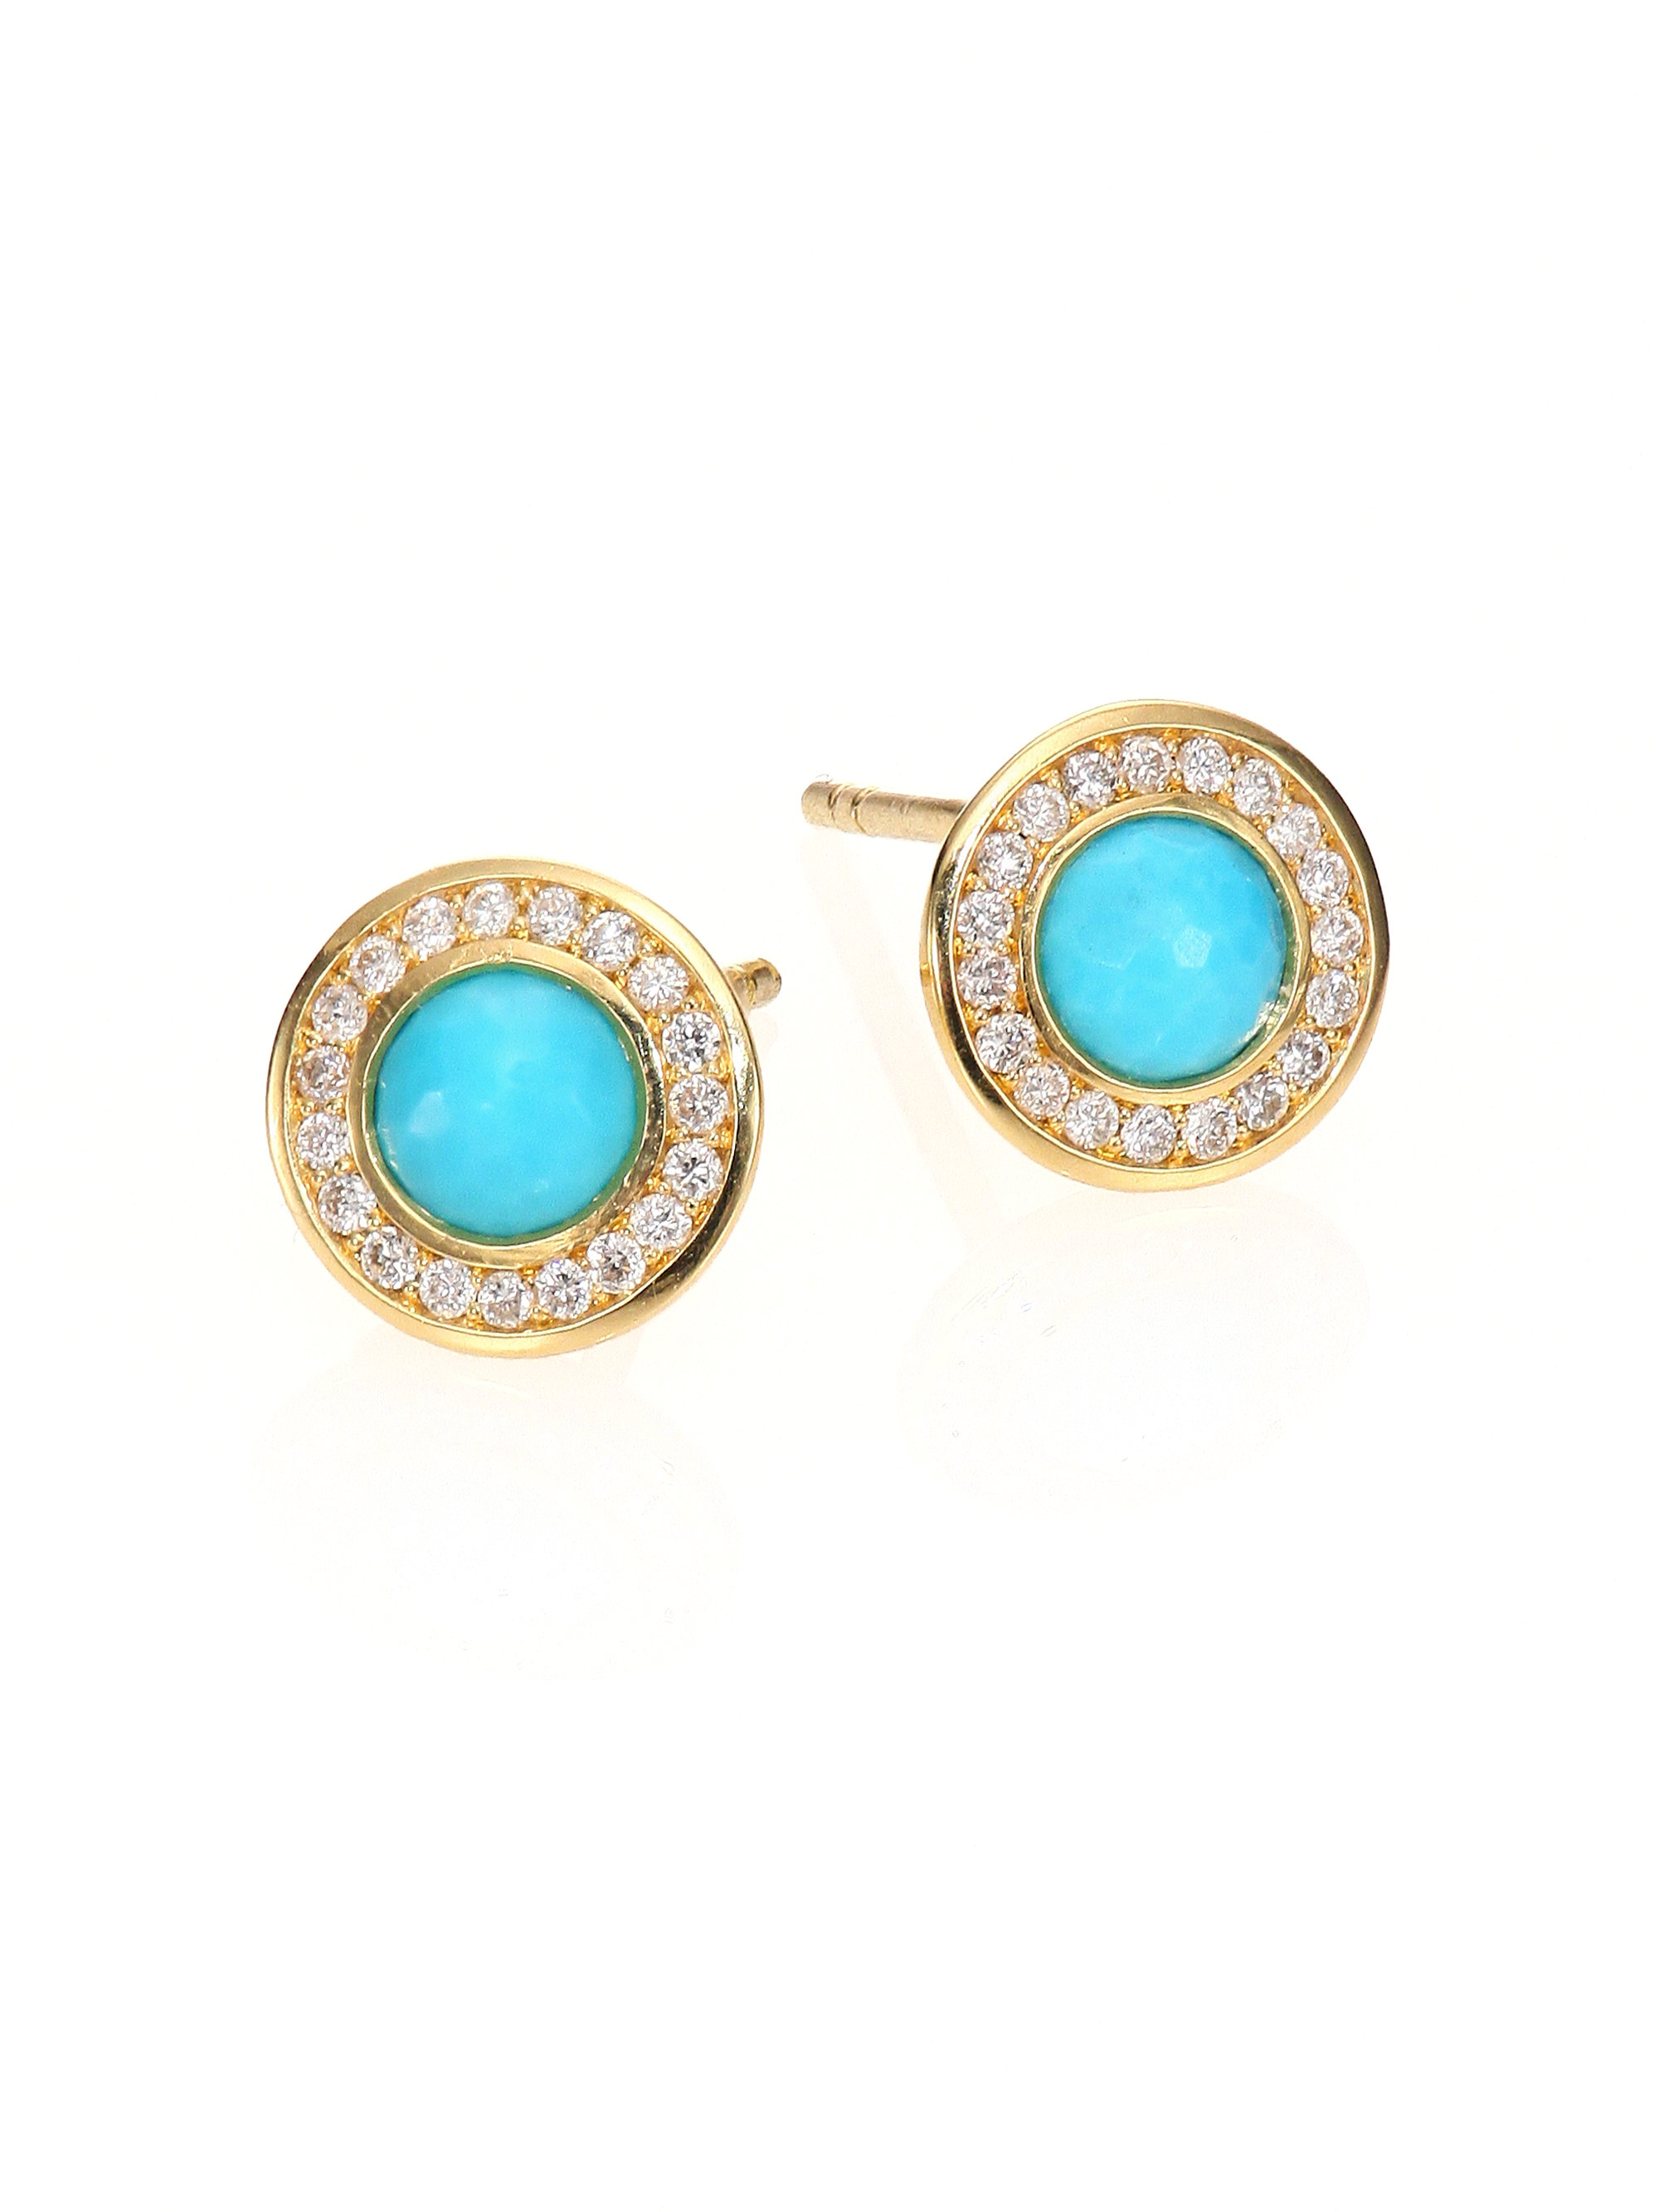 jewellery teardrop earrings silver stud oliver zosia bonas turquoise